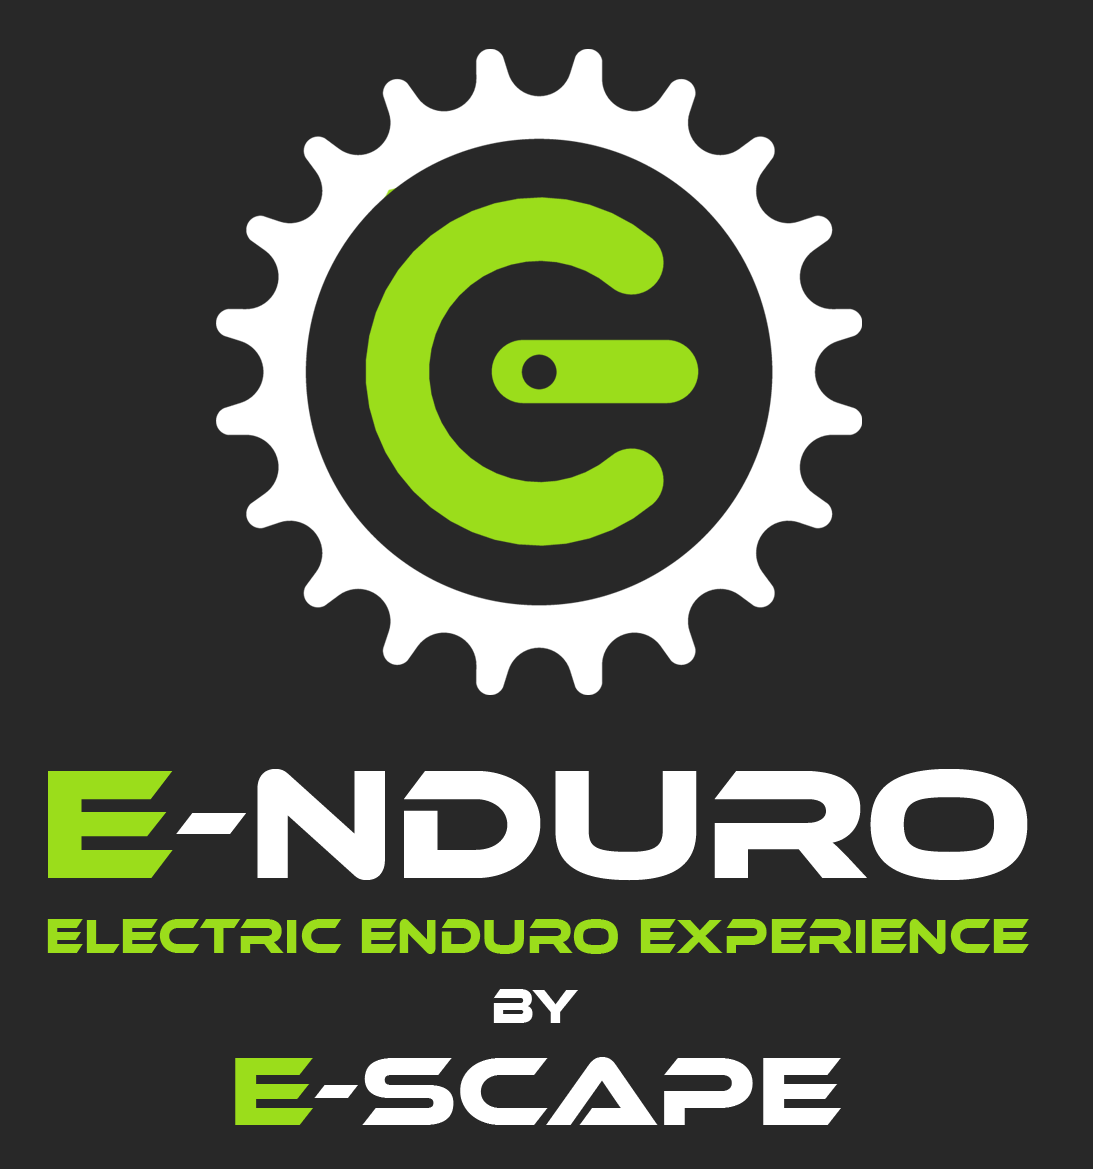 Electric enduro experience